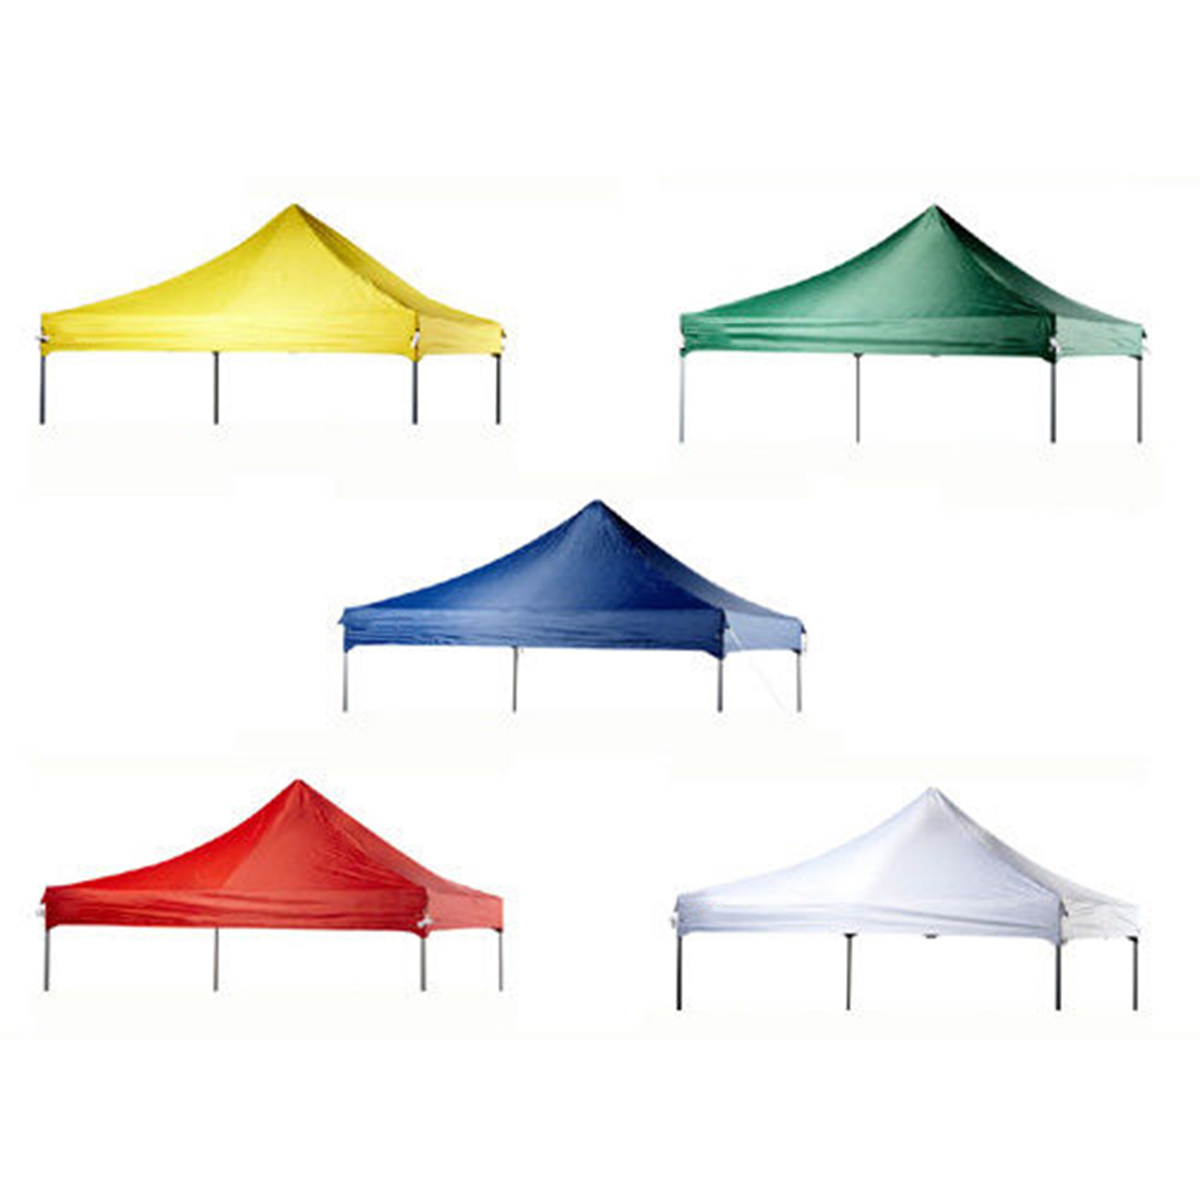 5 Colors 3x3M 300D Waterproof Camping Hiking Sun Shelter Tent Top Tarp Outdoor Replacement Cover Canopy Sunshade Sun Shelter New